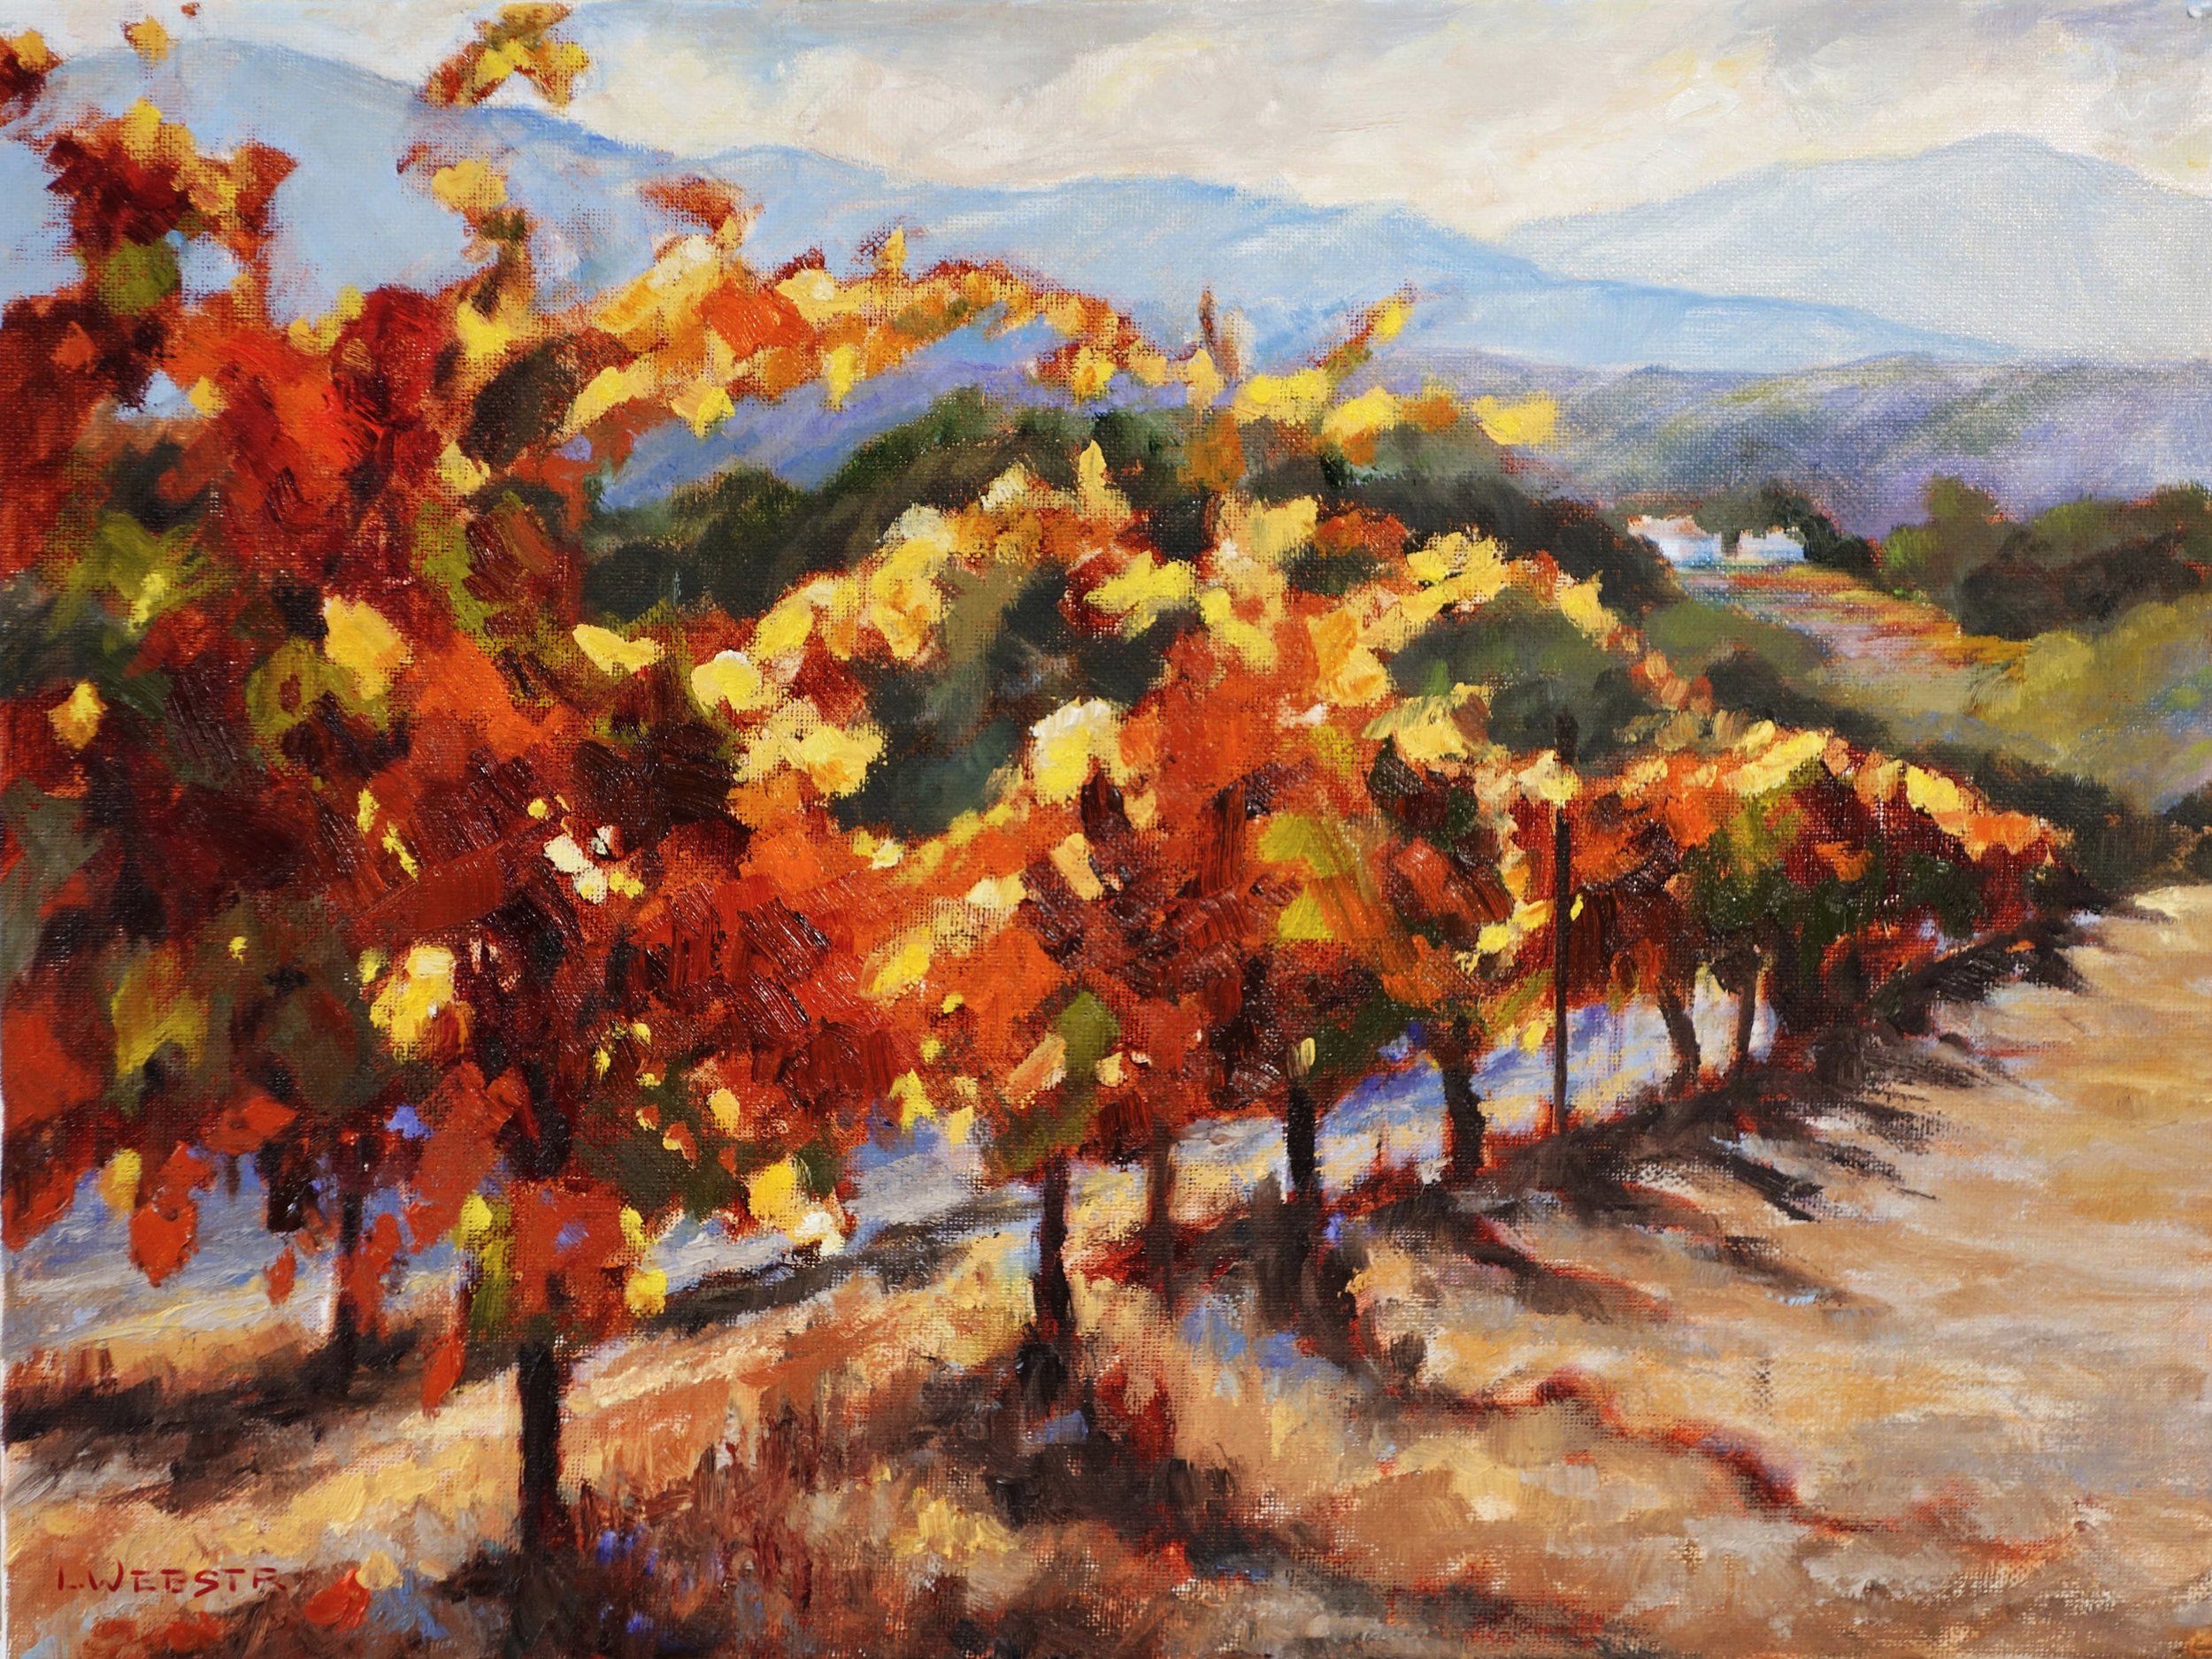 THIRD PLACE  - LaRhee Webster | Sebastopol Vines